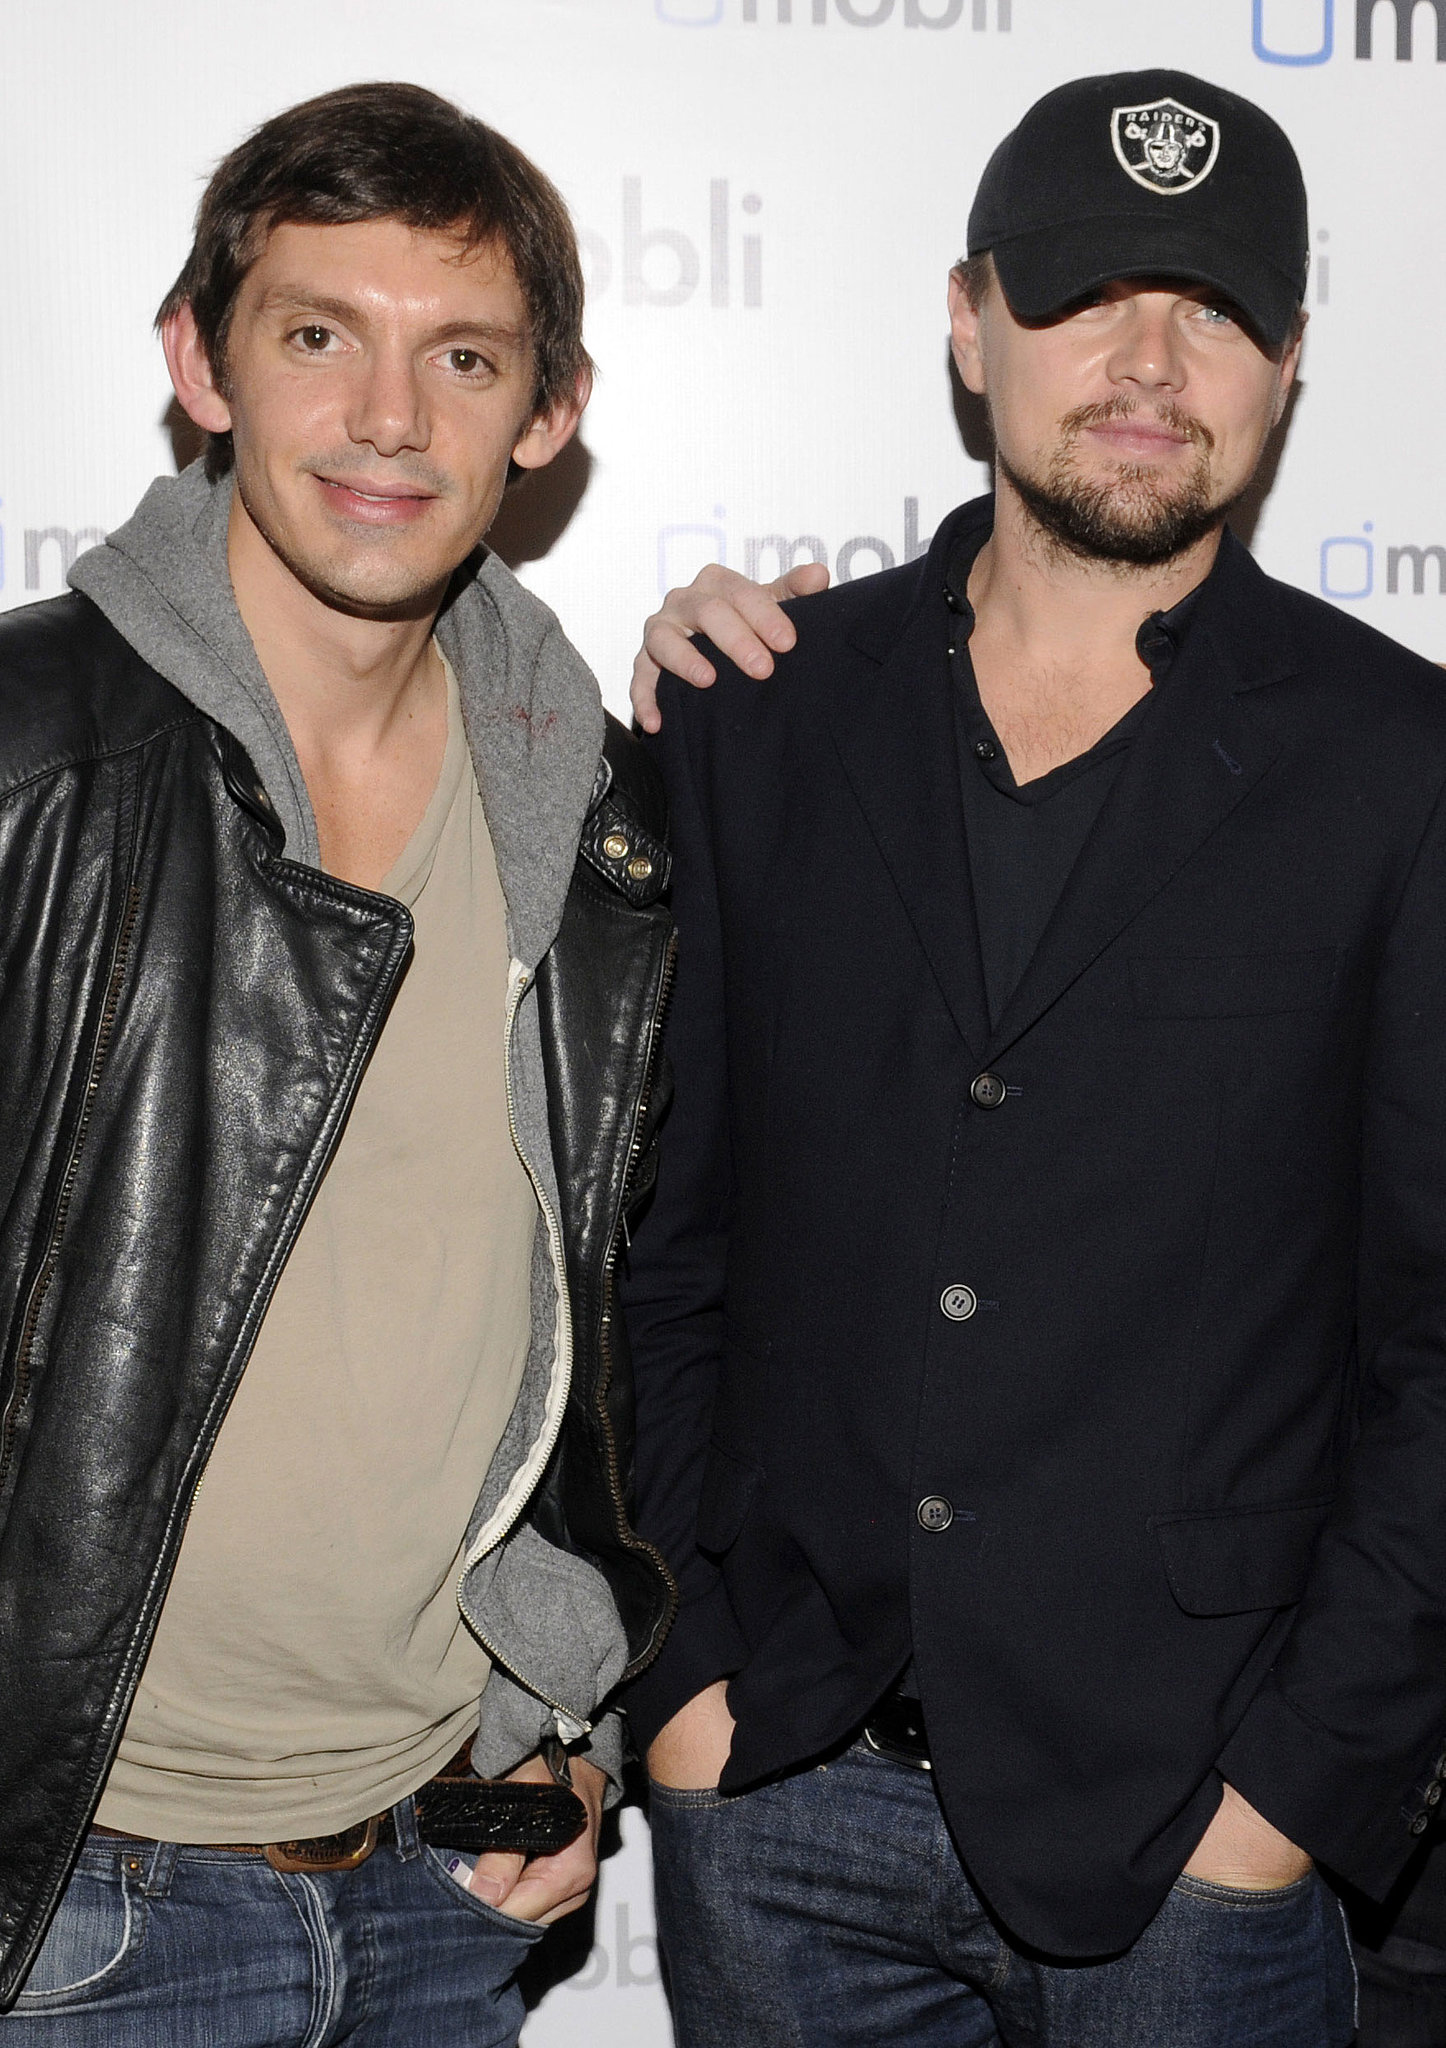 Leonardo DiCaprio and Lukas Haas have been buddies since they first met while auditioning in Hollywood years ago. They stick together for sports games and lavish vacations, and they even attended Coachella together in 2011.